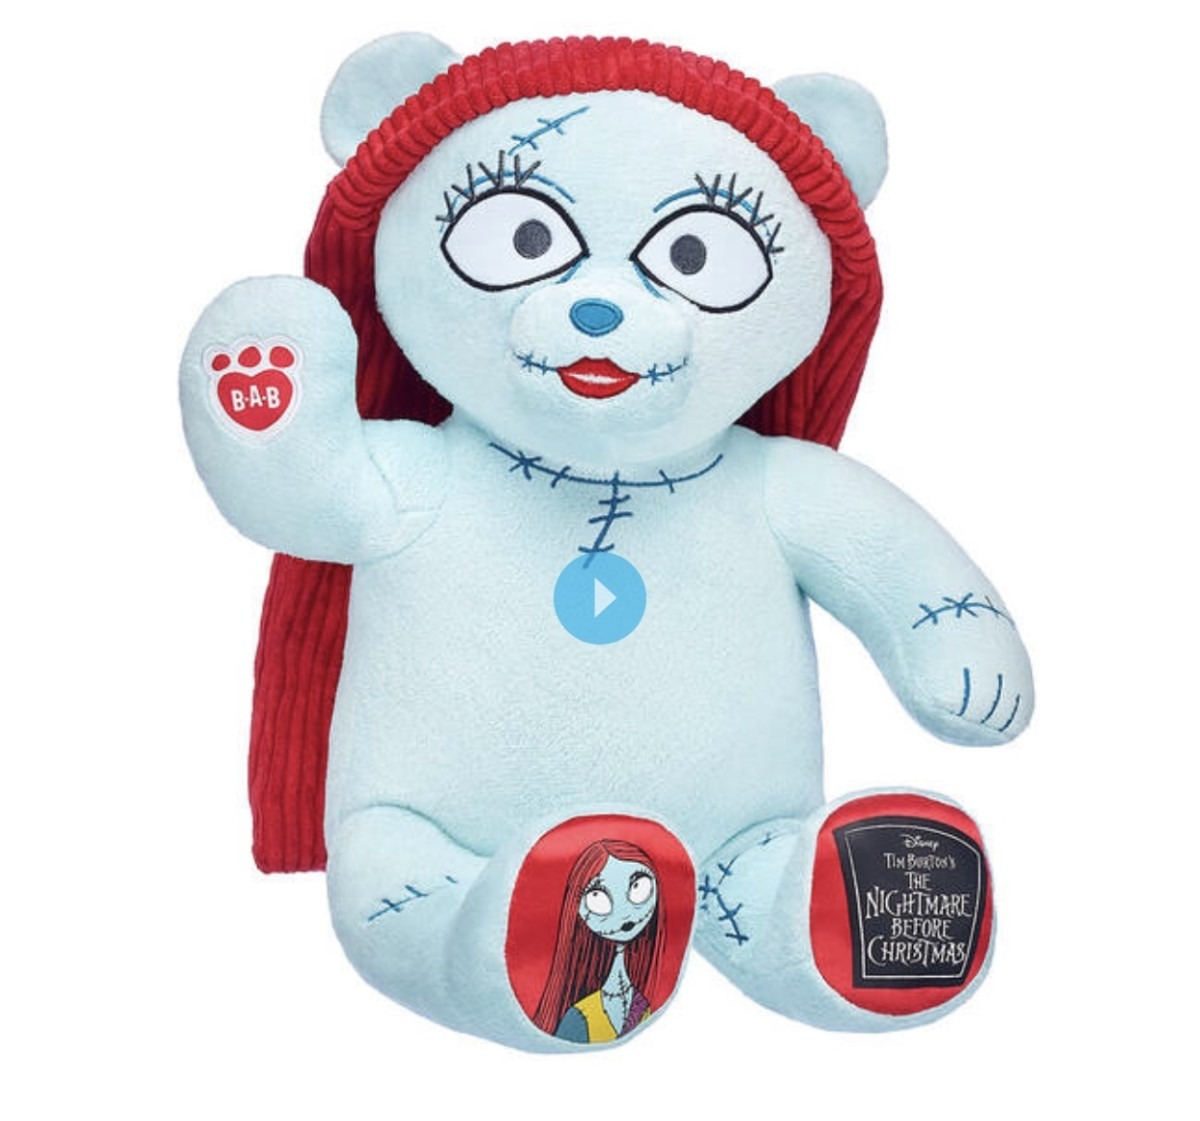 New Jack and Sally Bears from Build A Bear Workshop 3